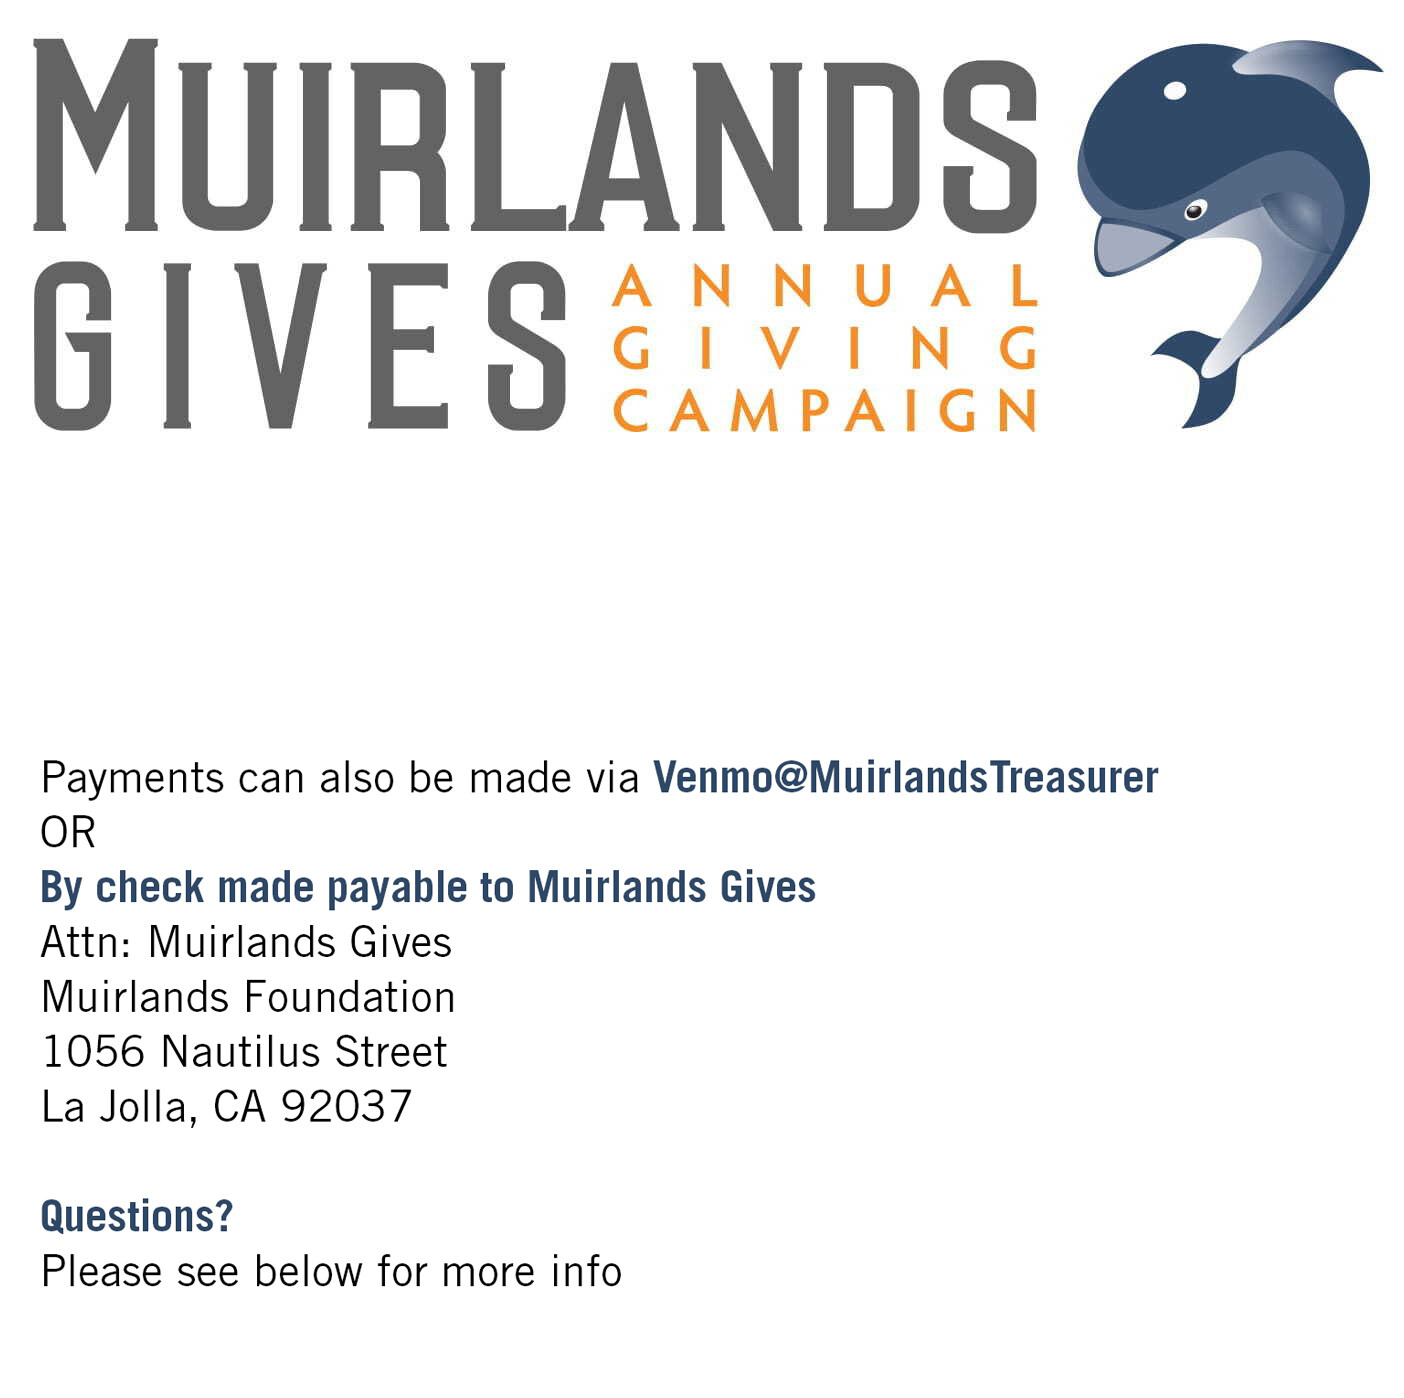 Muirlands Gives Donation - Choose Your Amount